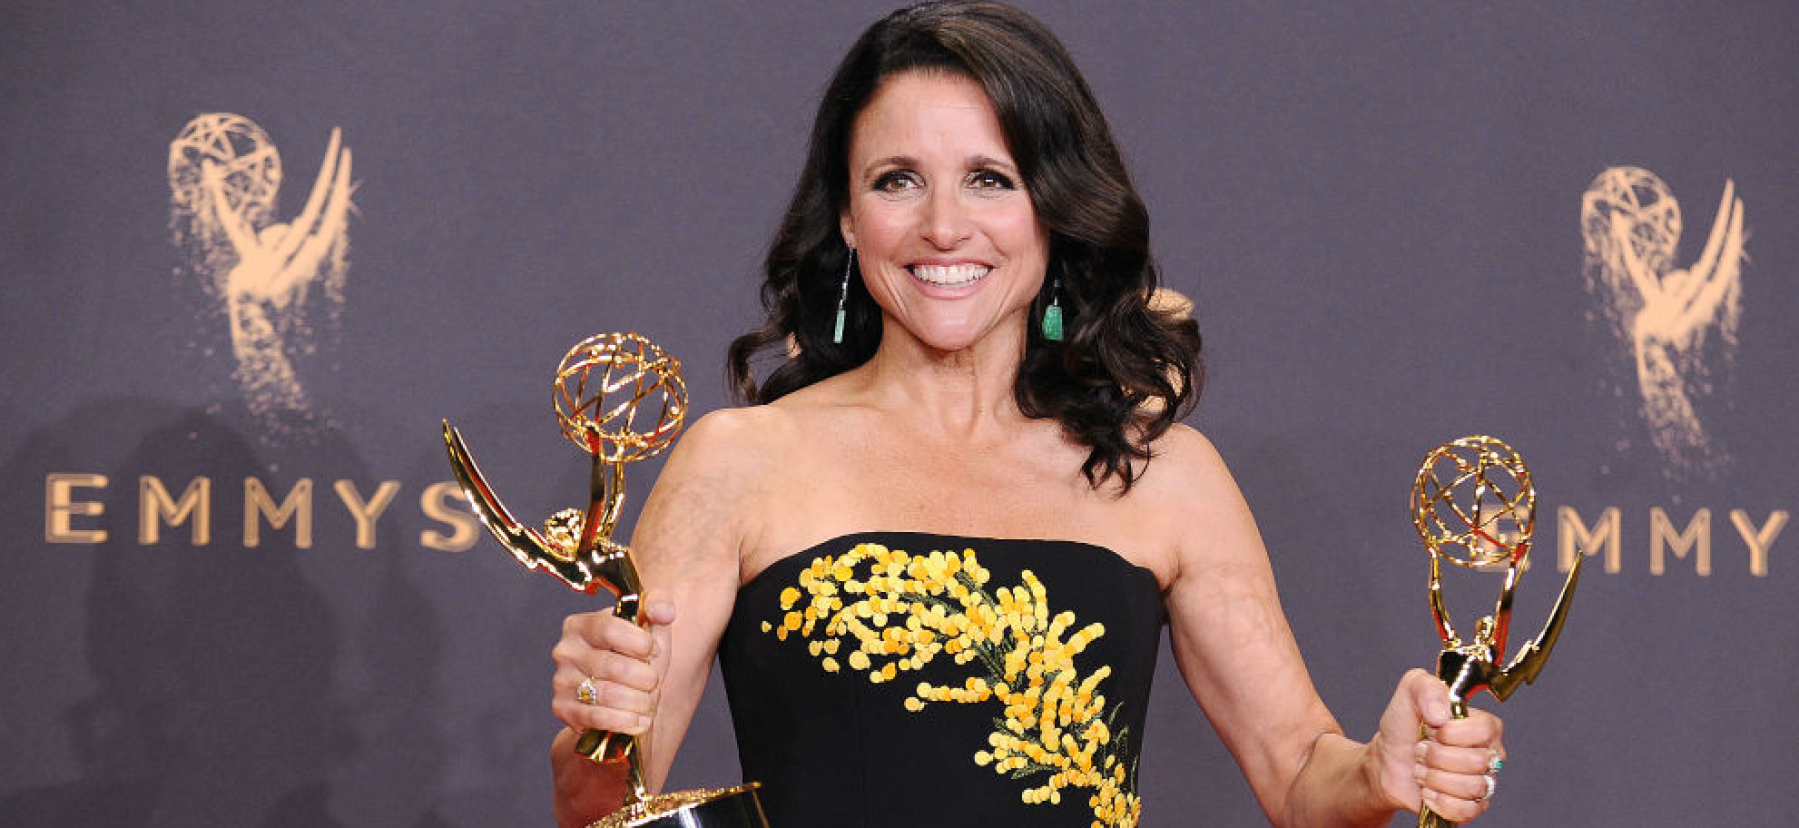 Actress Julia Louis-Dreyfus poses in the press room at the 69th annual Primetime Emmy Awards at Microsoft Theater on September 17, 2017 in Los Angeles, California. (Photo by Jason LaVeris/FilmMagic)